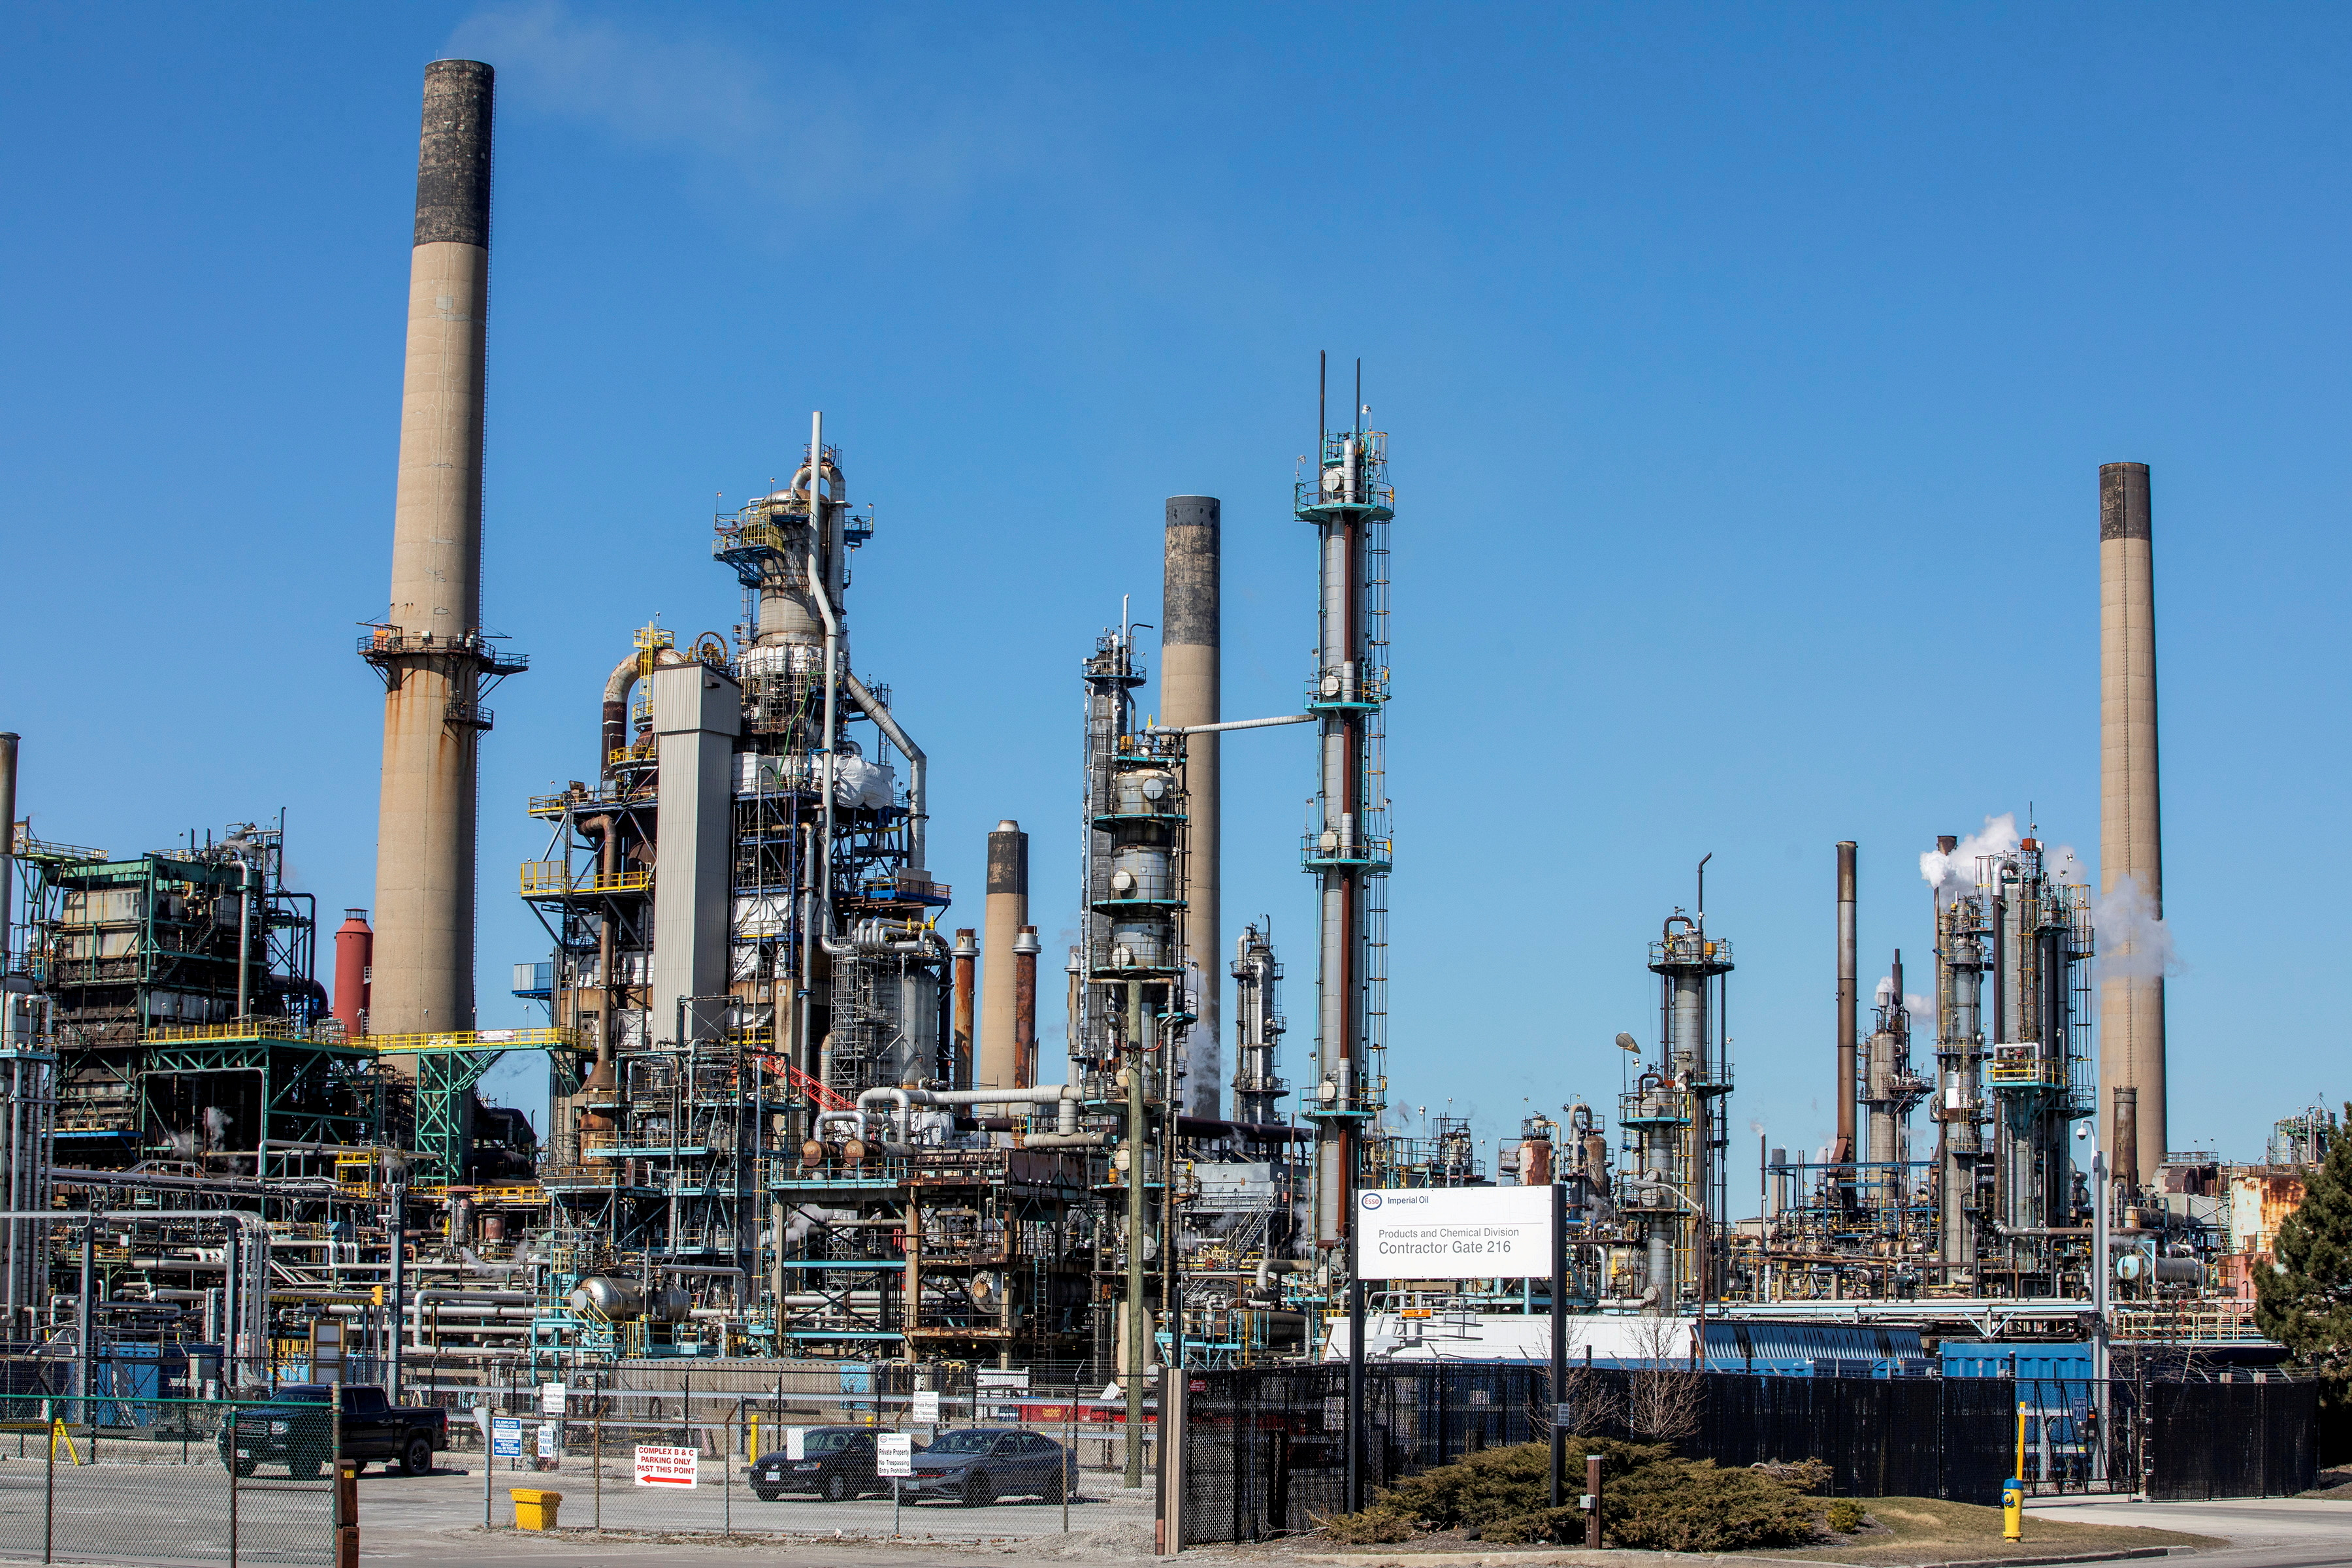 General view of the Imperial Oil refinery, located near Enbridge's Line 5 pipeline in Sarnia, Ontario, Canada March 20, 2021.  REUTERS/Carlos Osorio/File Photo